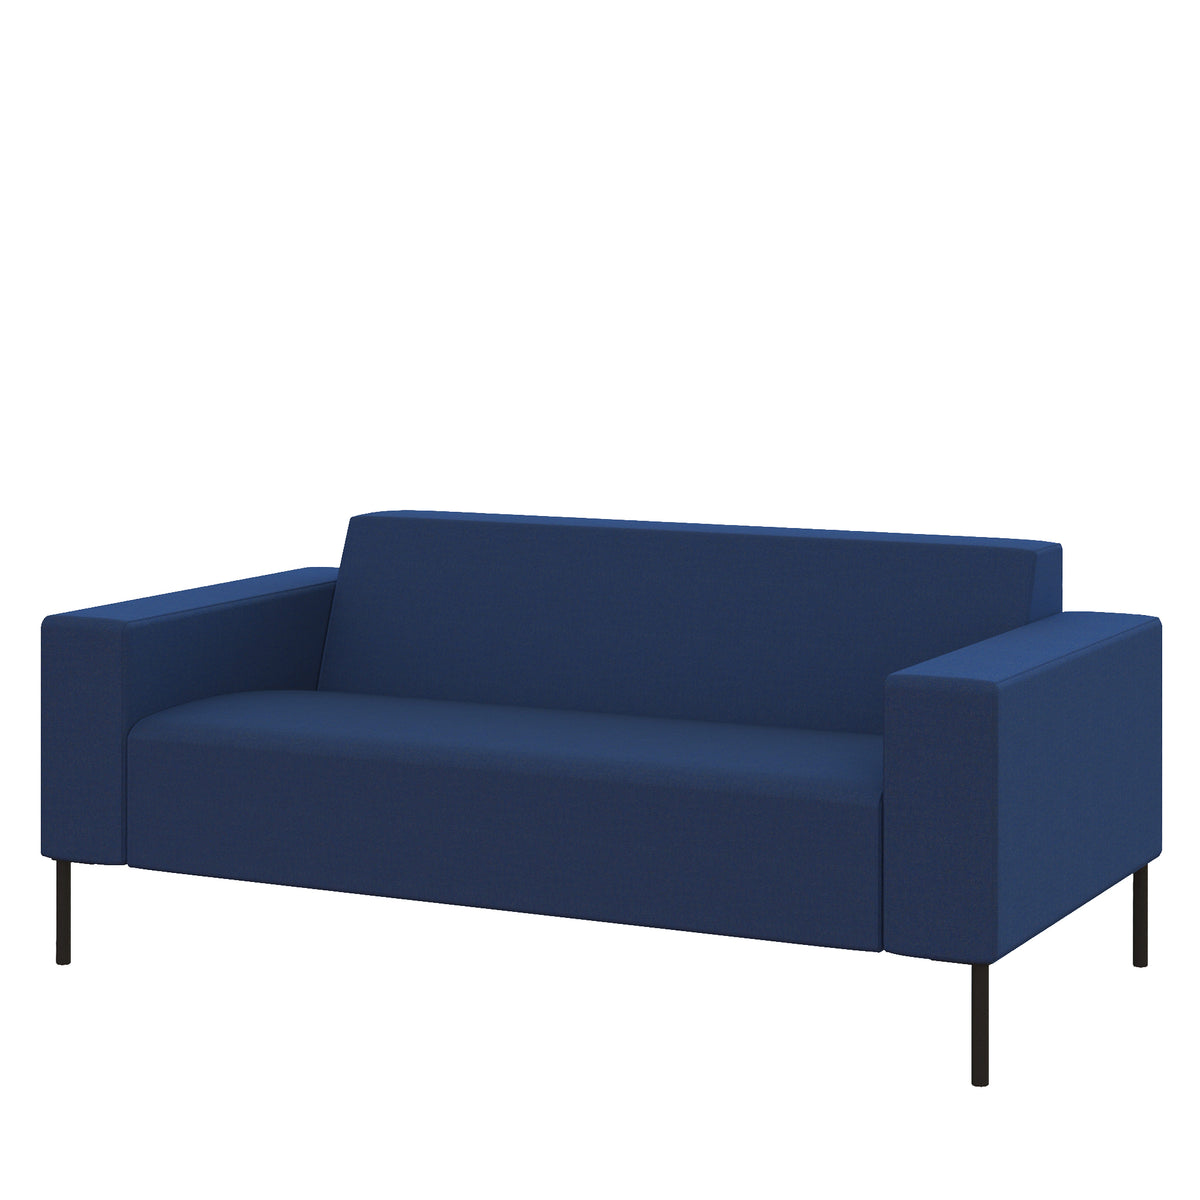 Hitch Mylius HM18 Origin Two Seat Sofa Black Legs Holborn